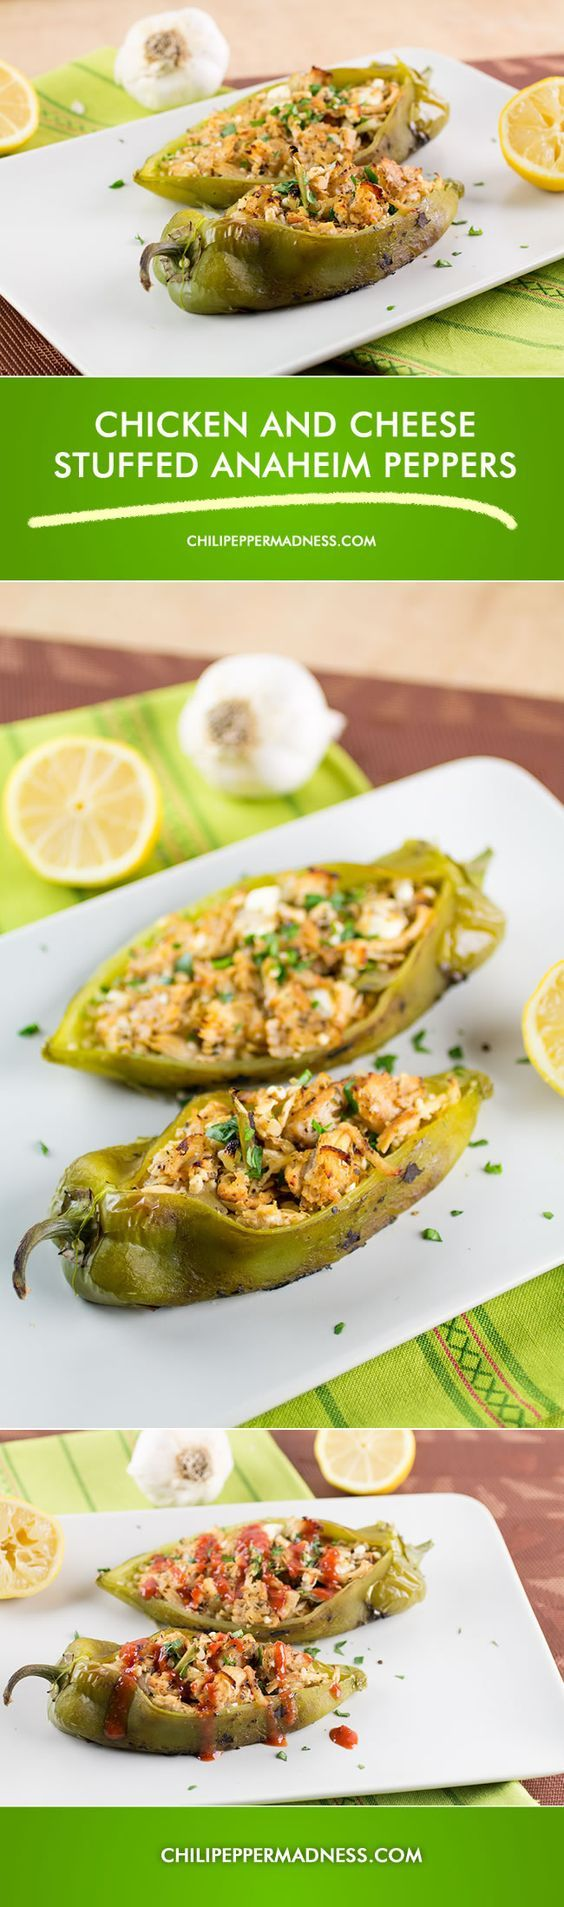 1000+ ideas about Stuffed Anaheim Peppers on Pinterest ...